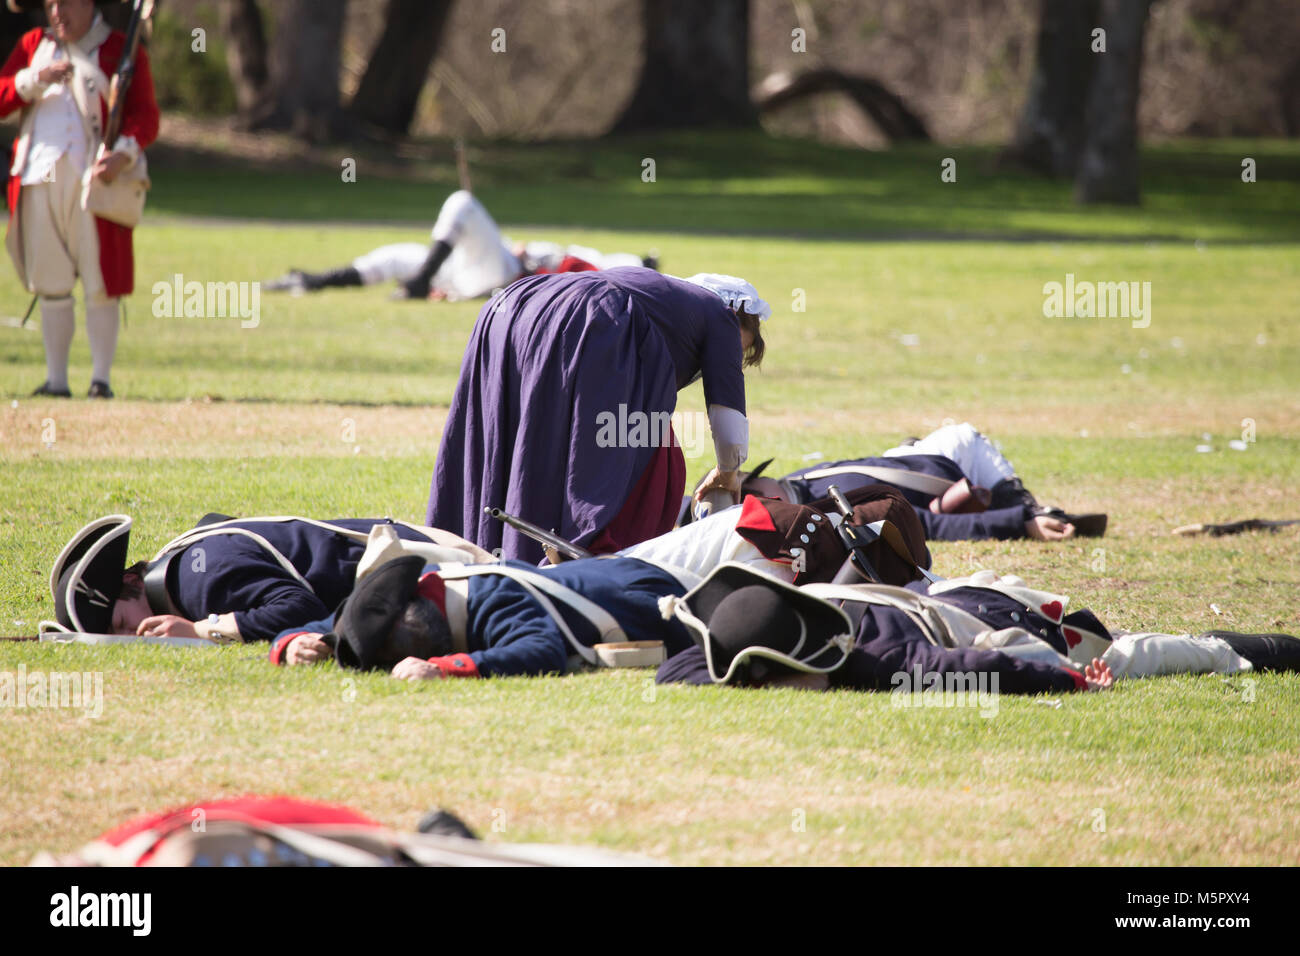 Wounded Soldiers Stockfotos & Wounded Soldiers Bilder - Alamy